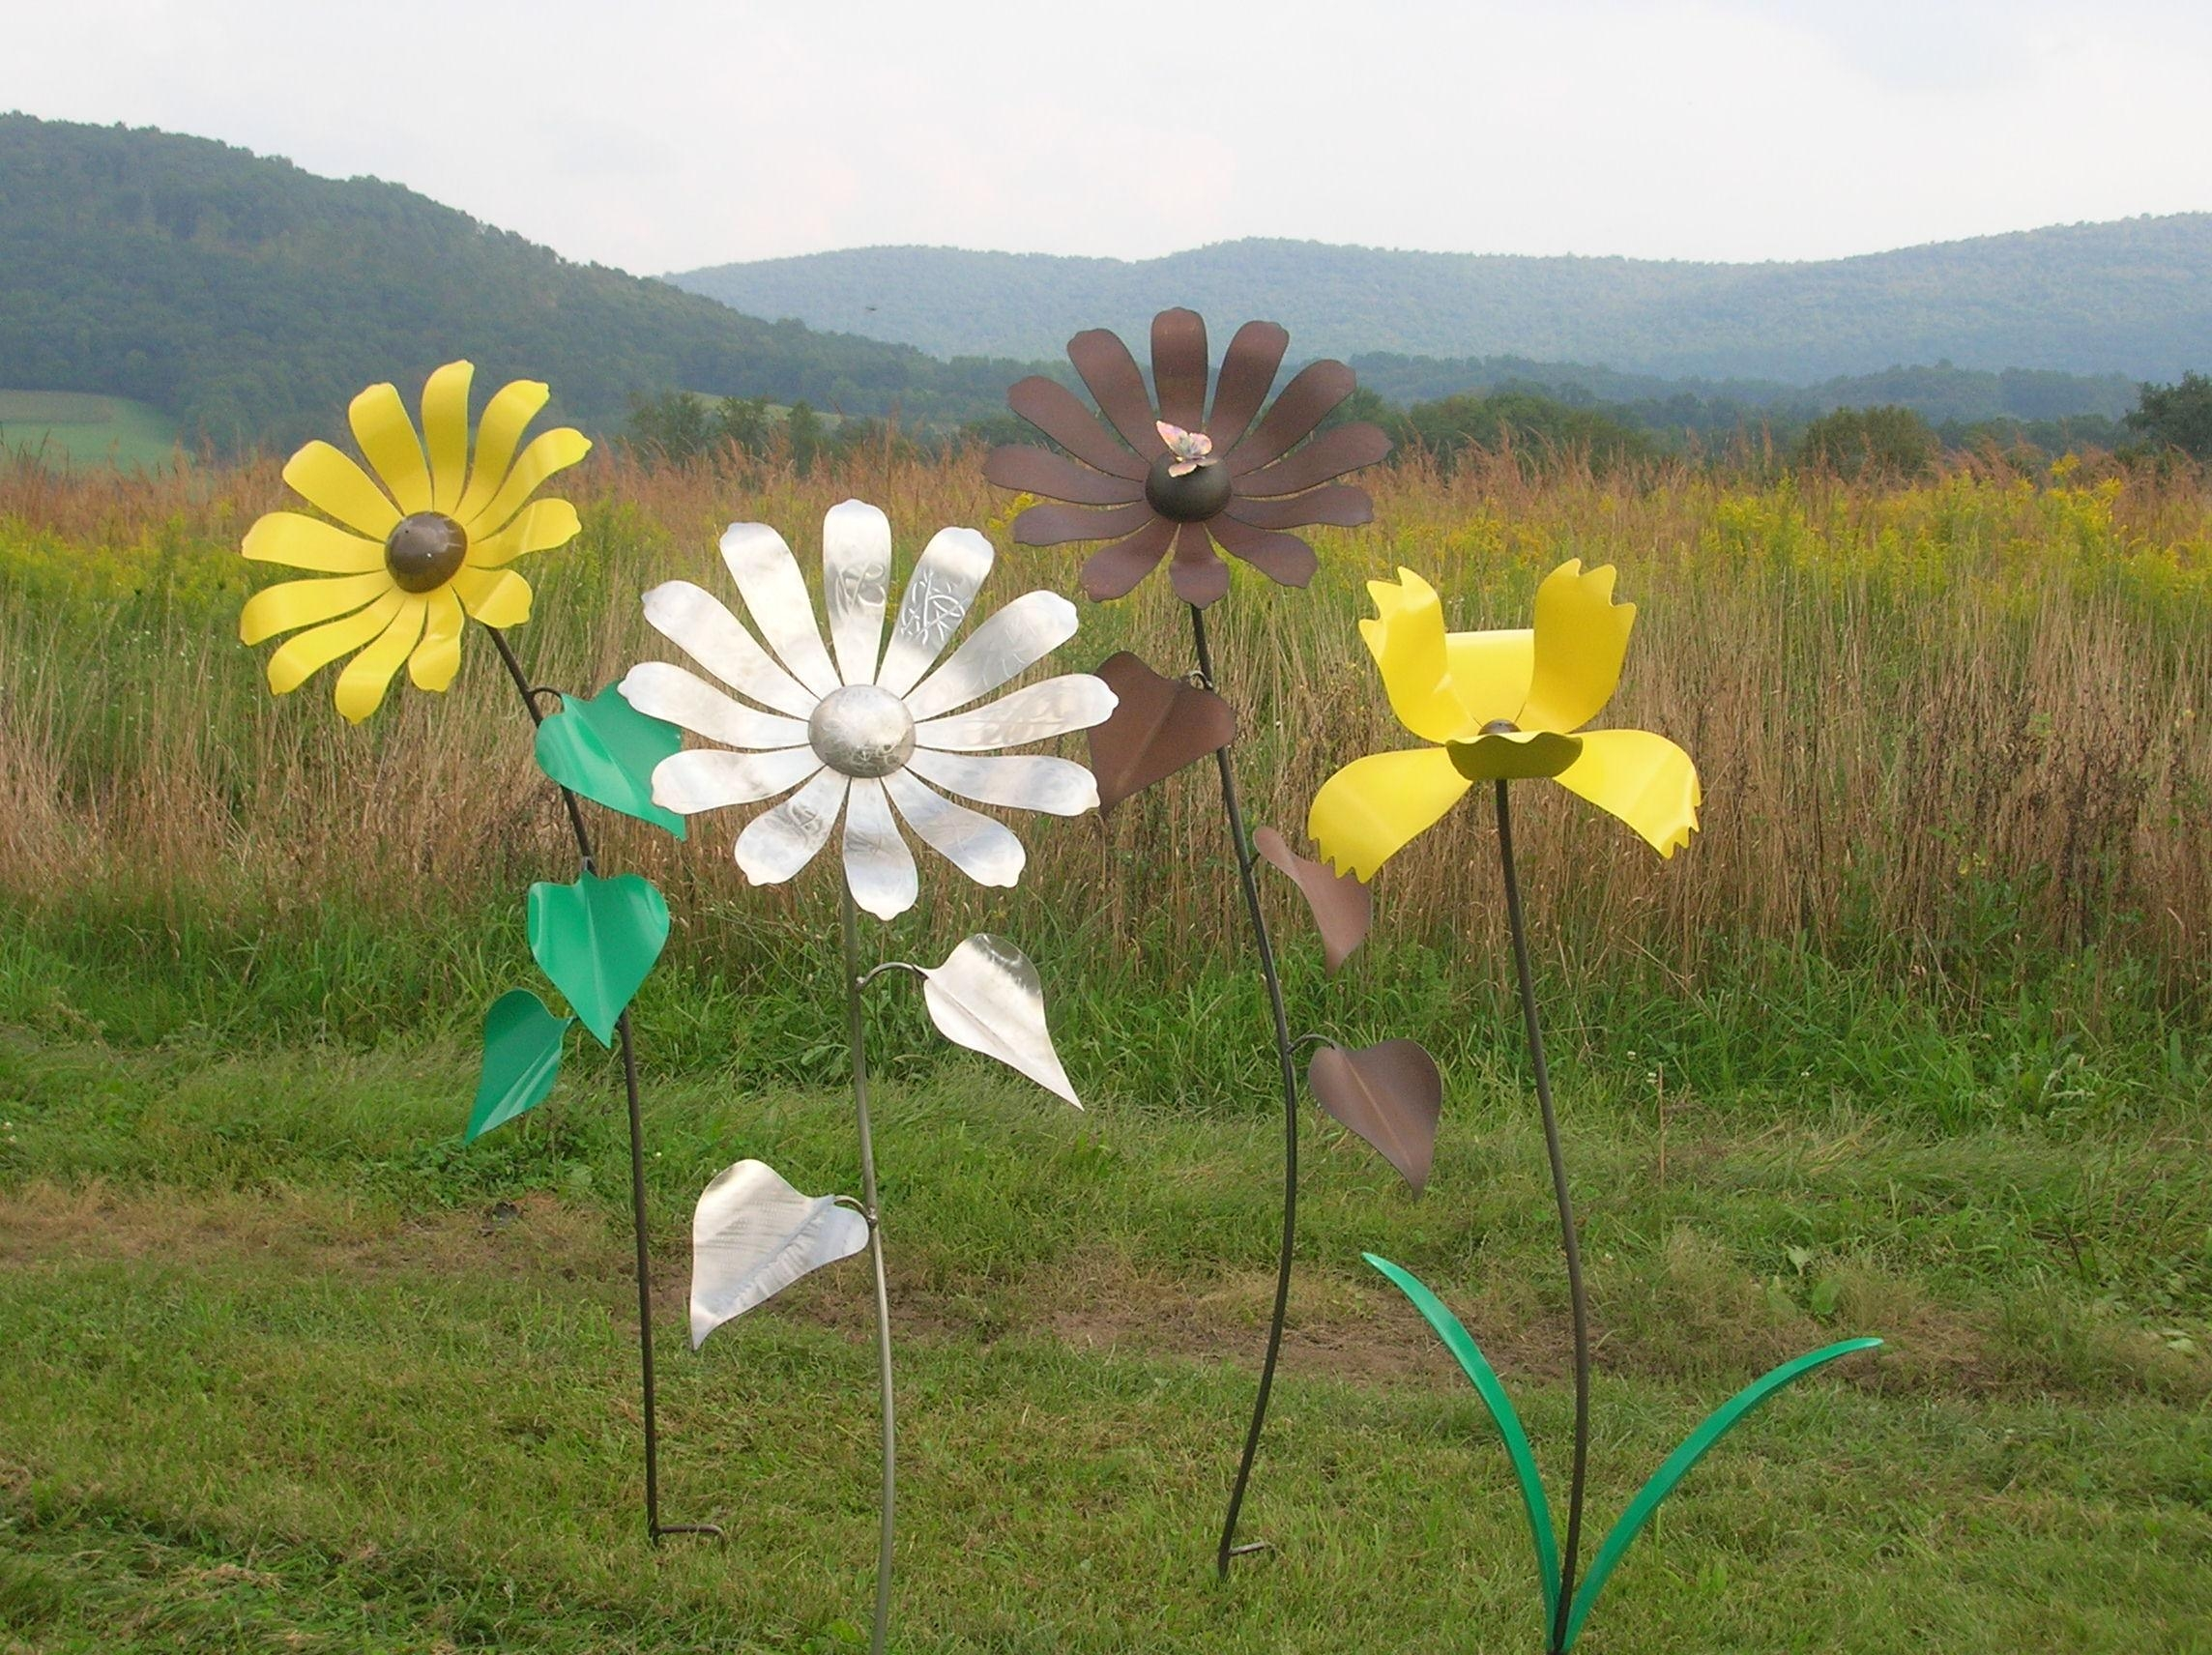 Giant Sunflowers | Shull's Metal Fab Throughout Metal Sunflower Yard Art (Image 13 of 20)